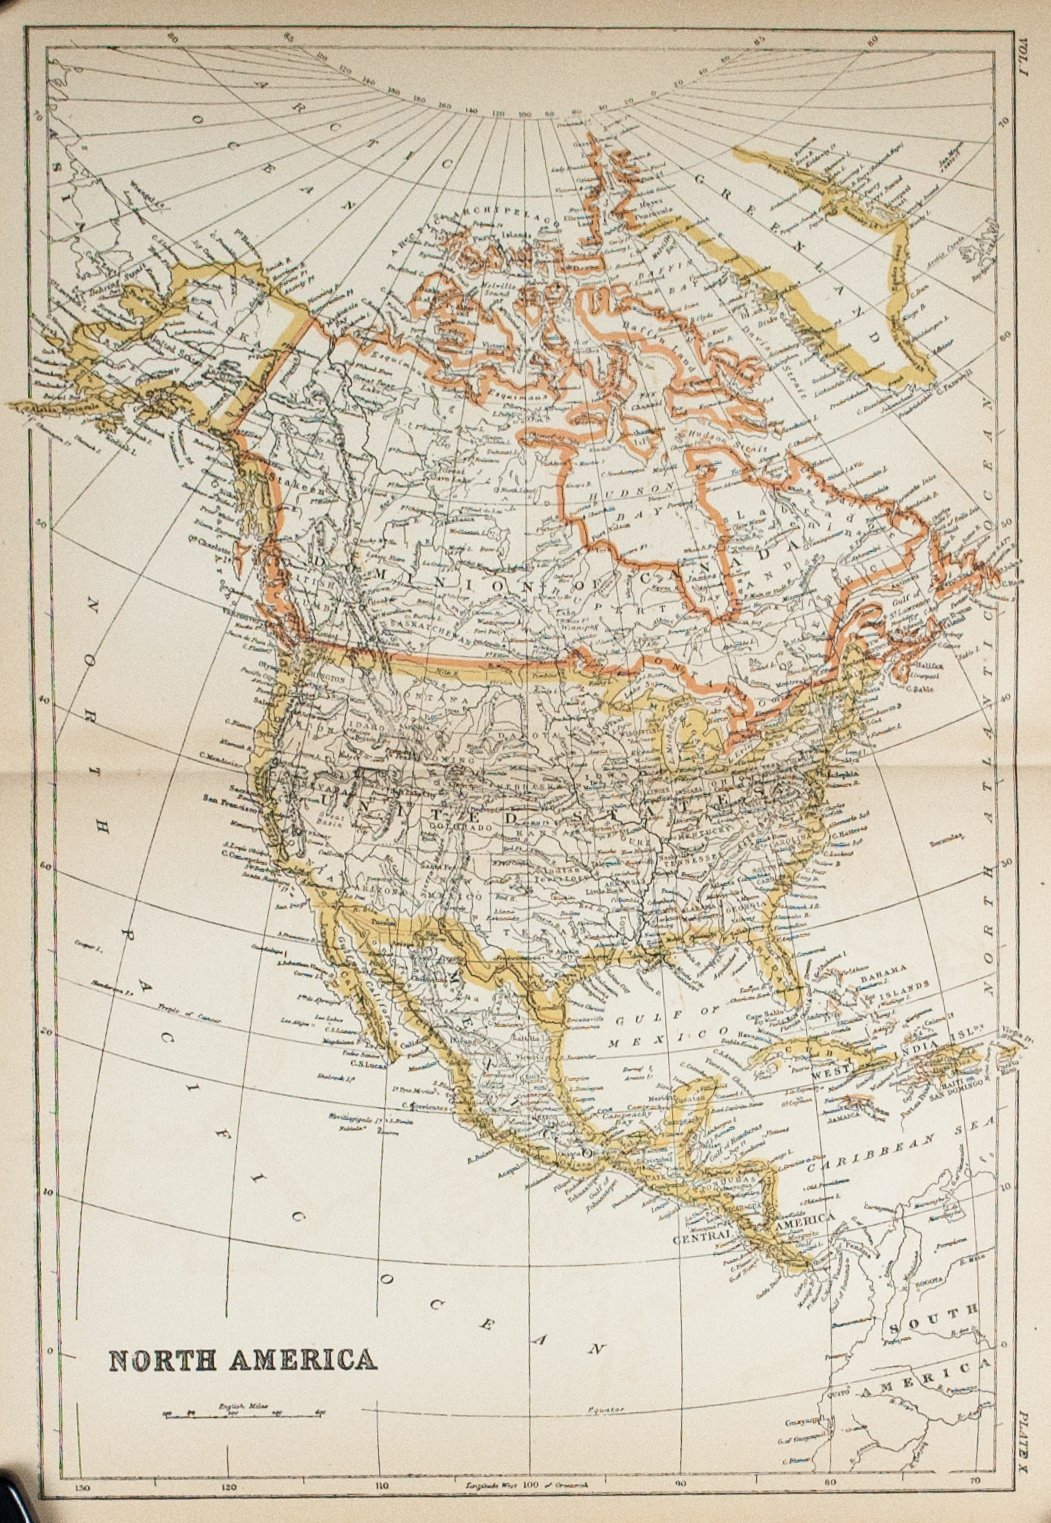 1887 North America - Britannica